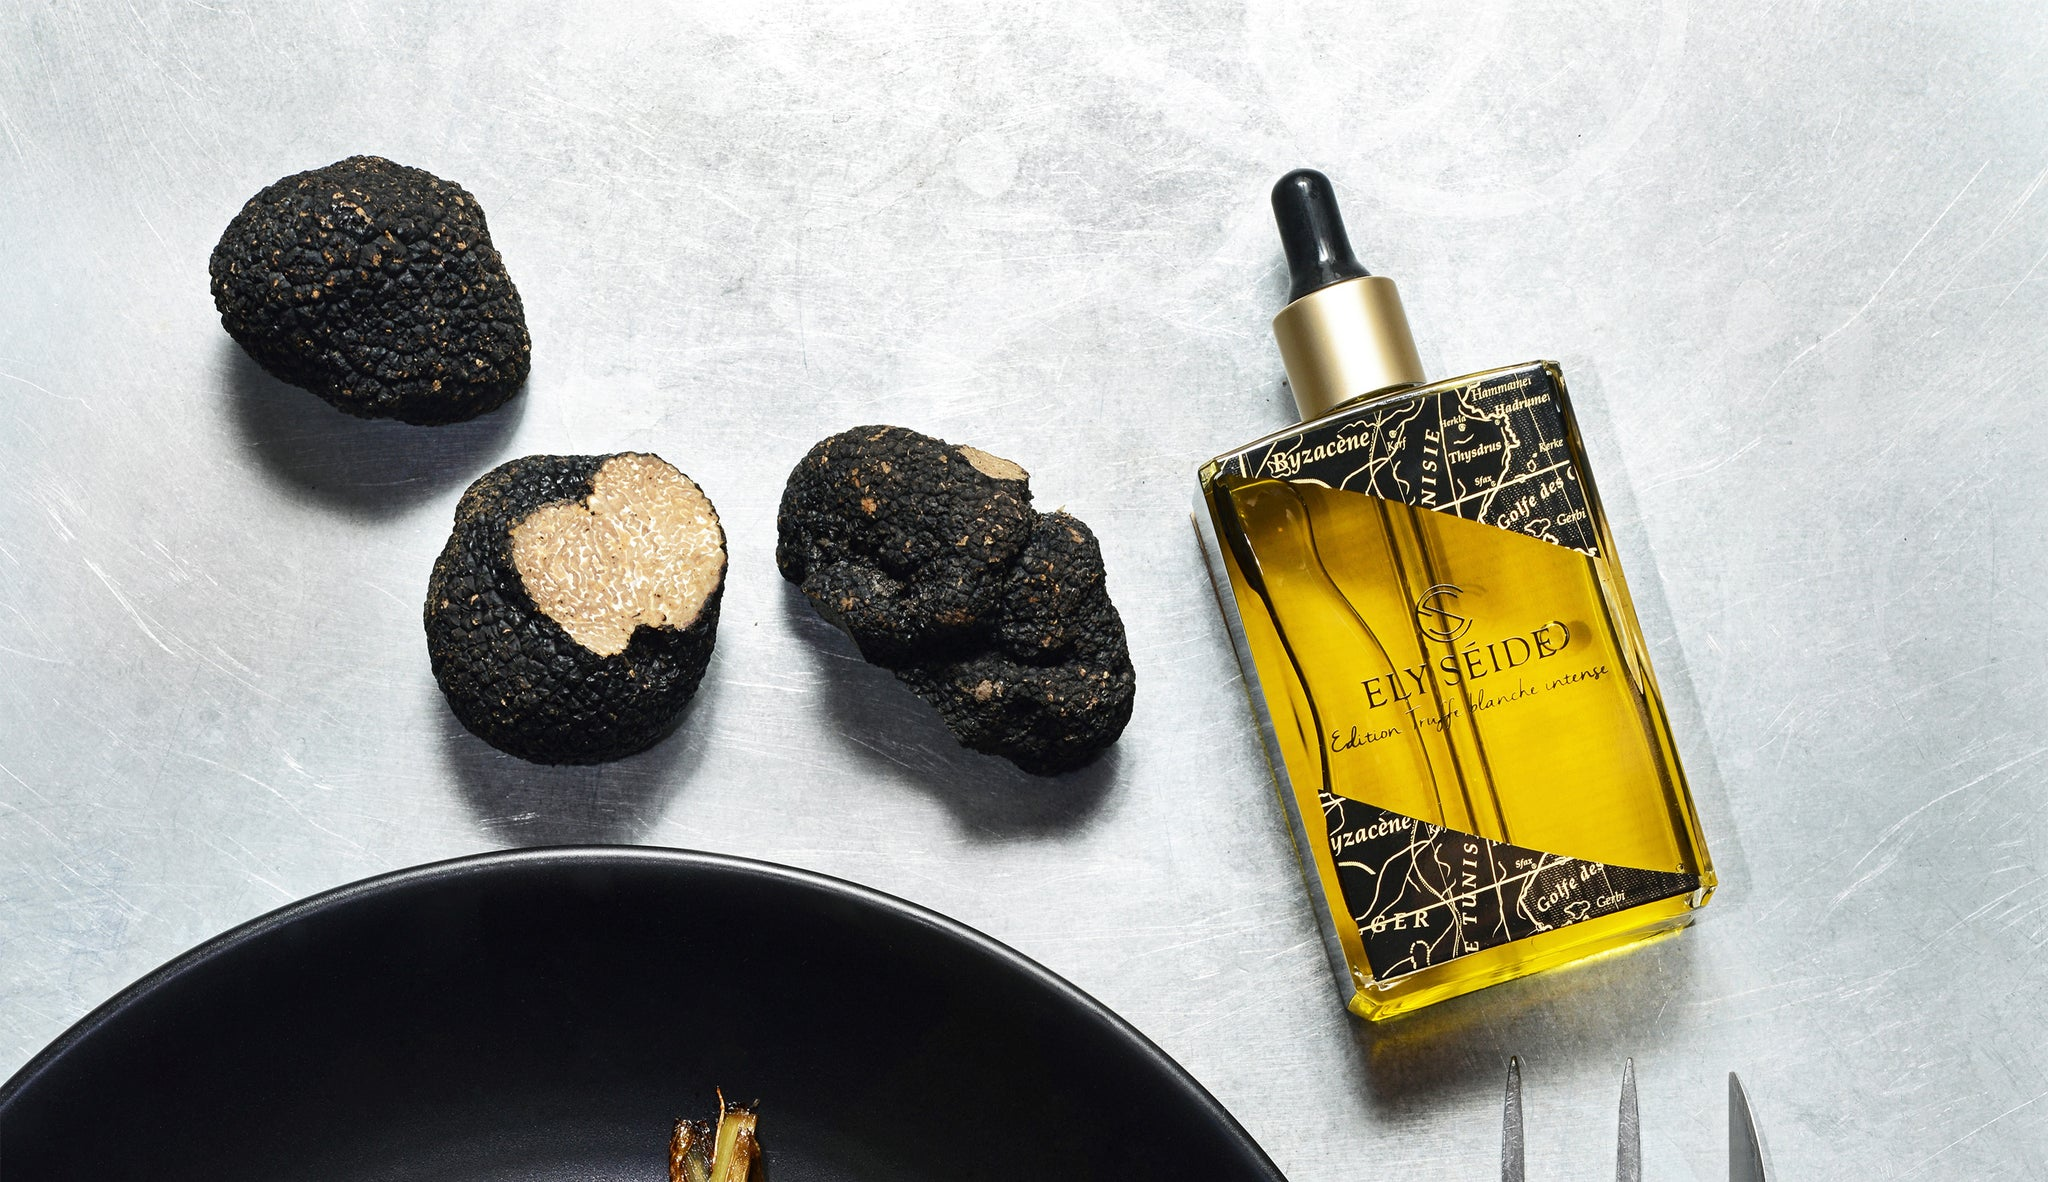 THE TRUFFLE COLLECTION